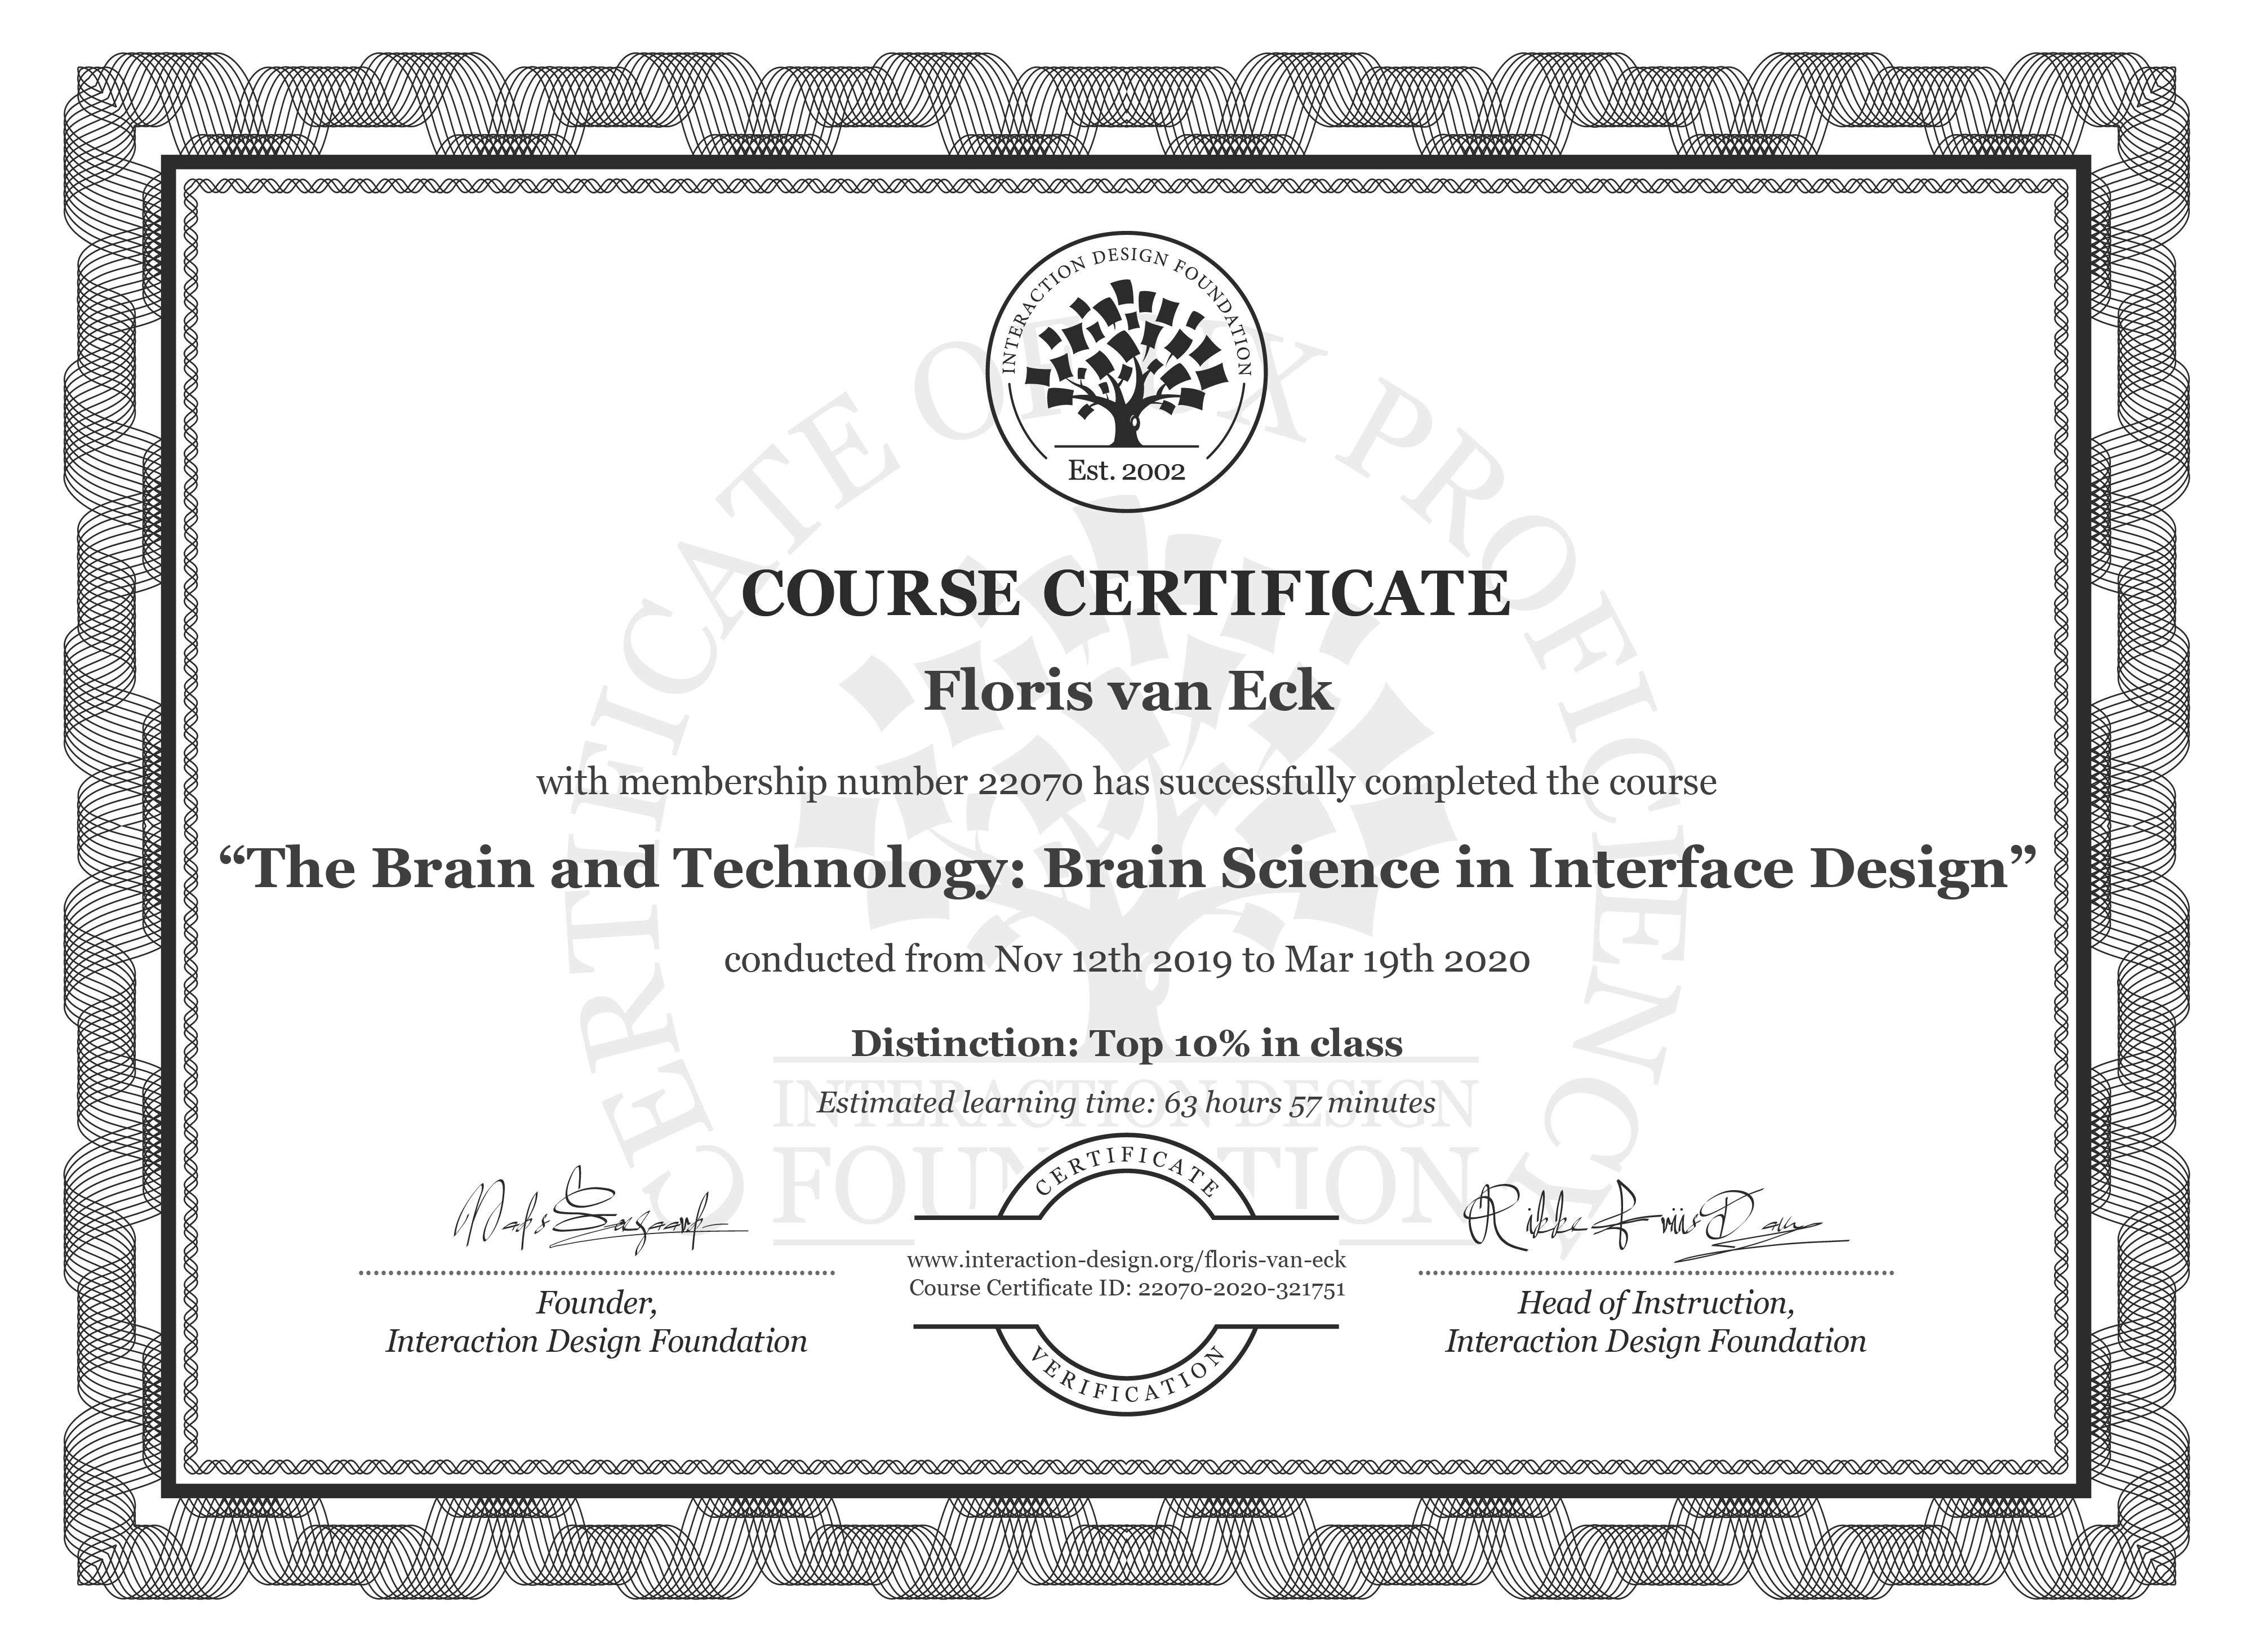 Floris van Eck's Course Certificate: The Brain and Technology: Brain Science in Interface Design